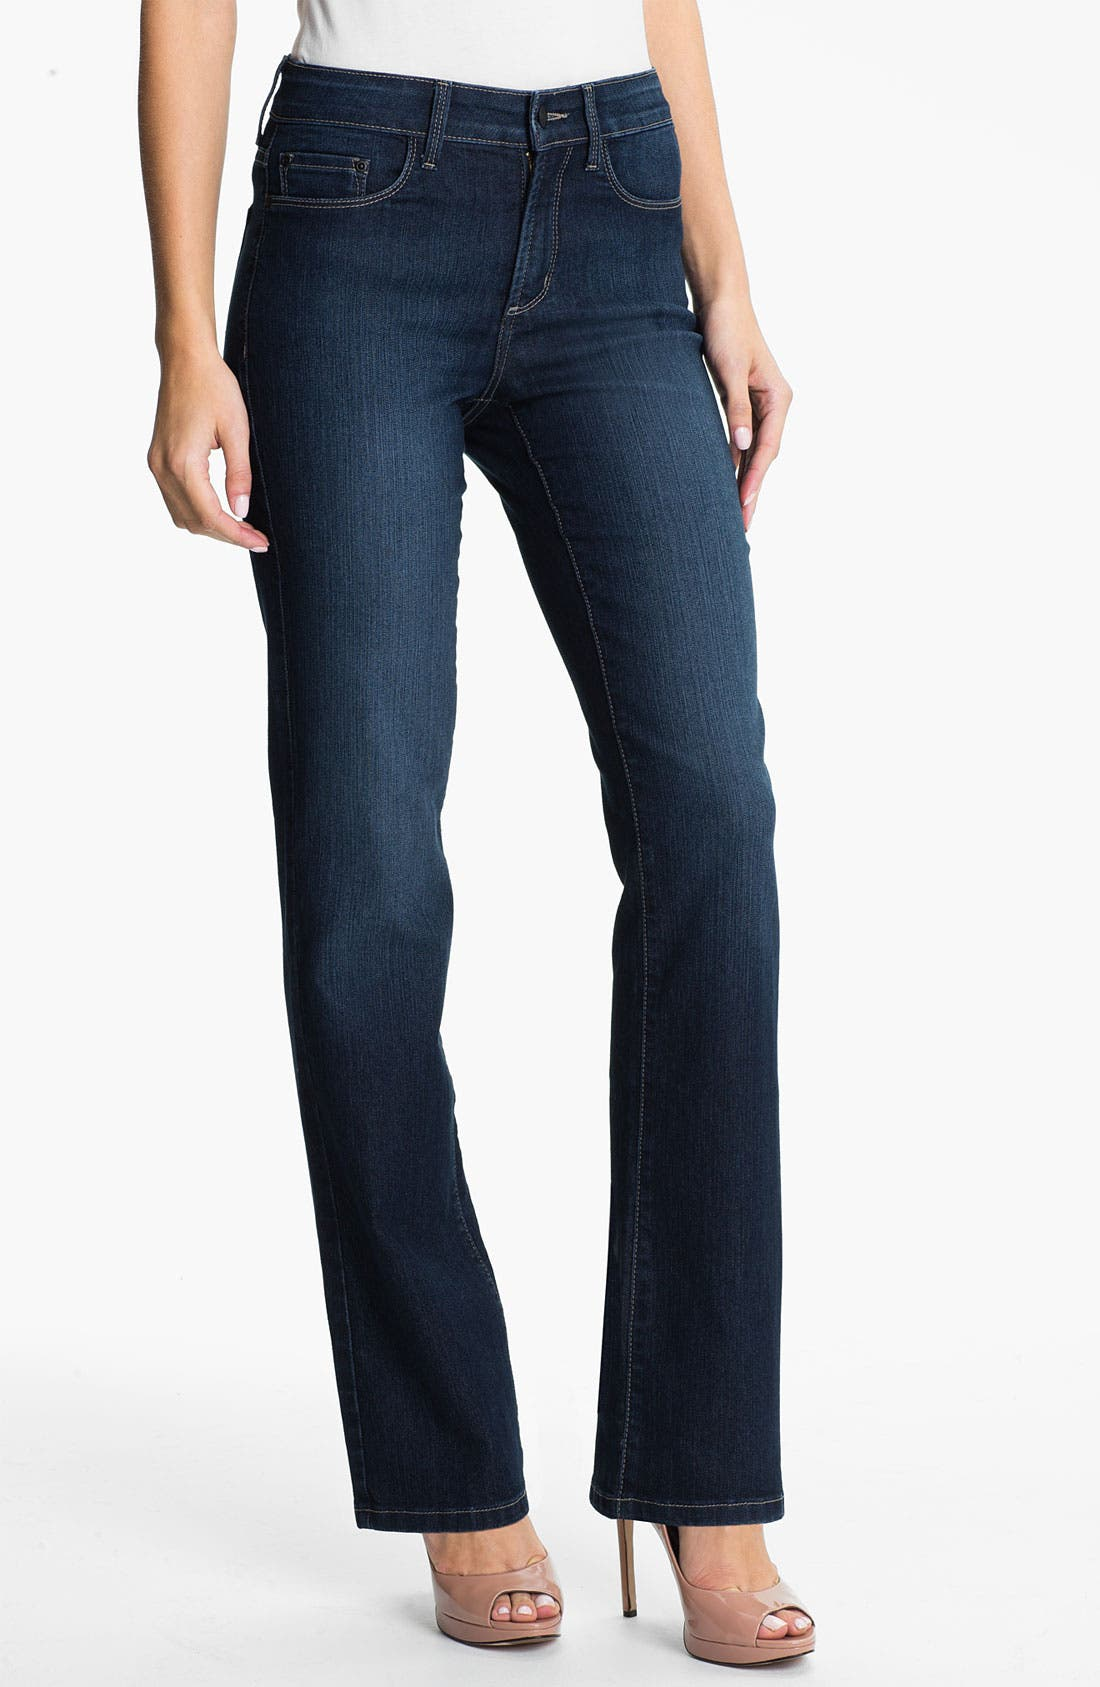 Alternate Image 1 Selected - NYDJ 'Barbara' Embellished Stretch Bootcut Jeans